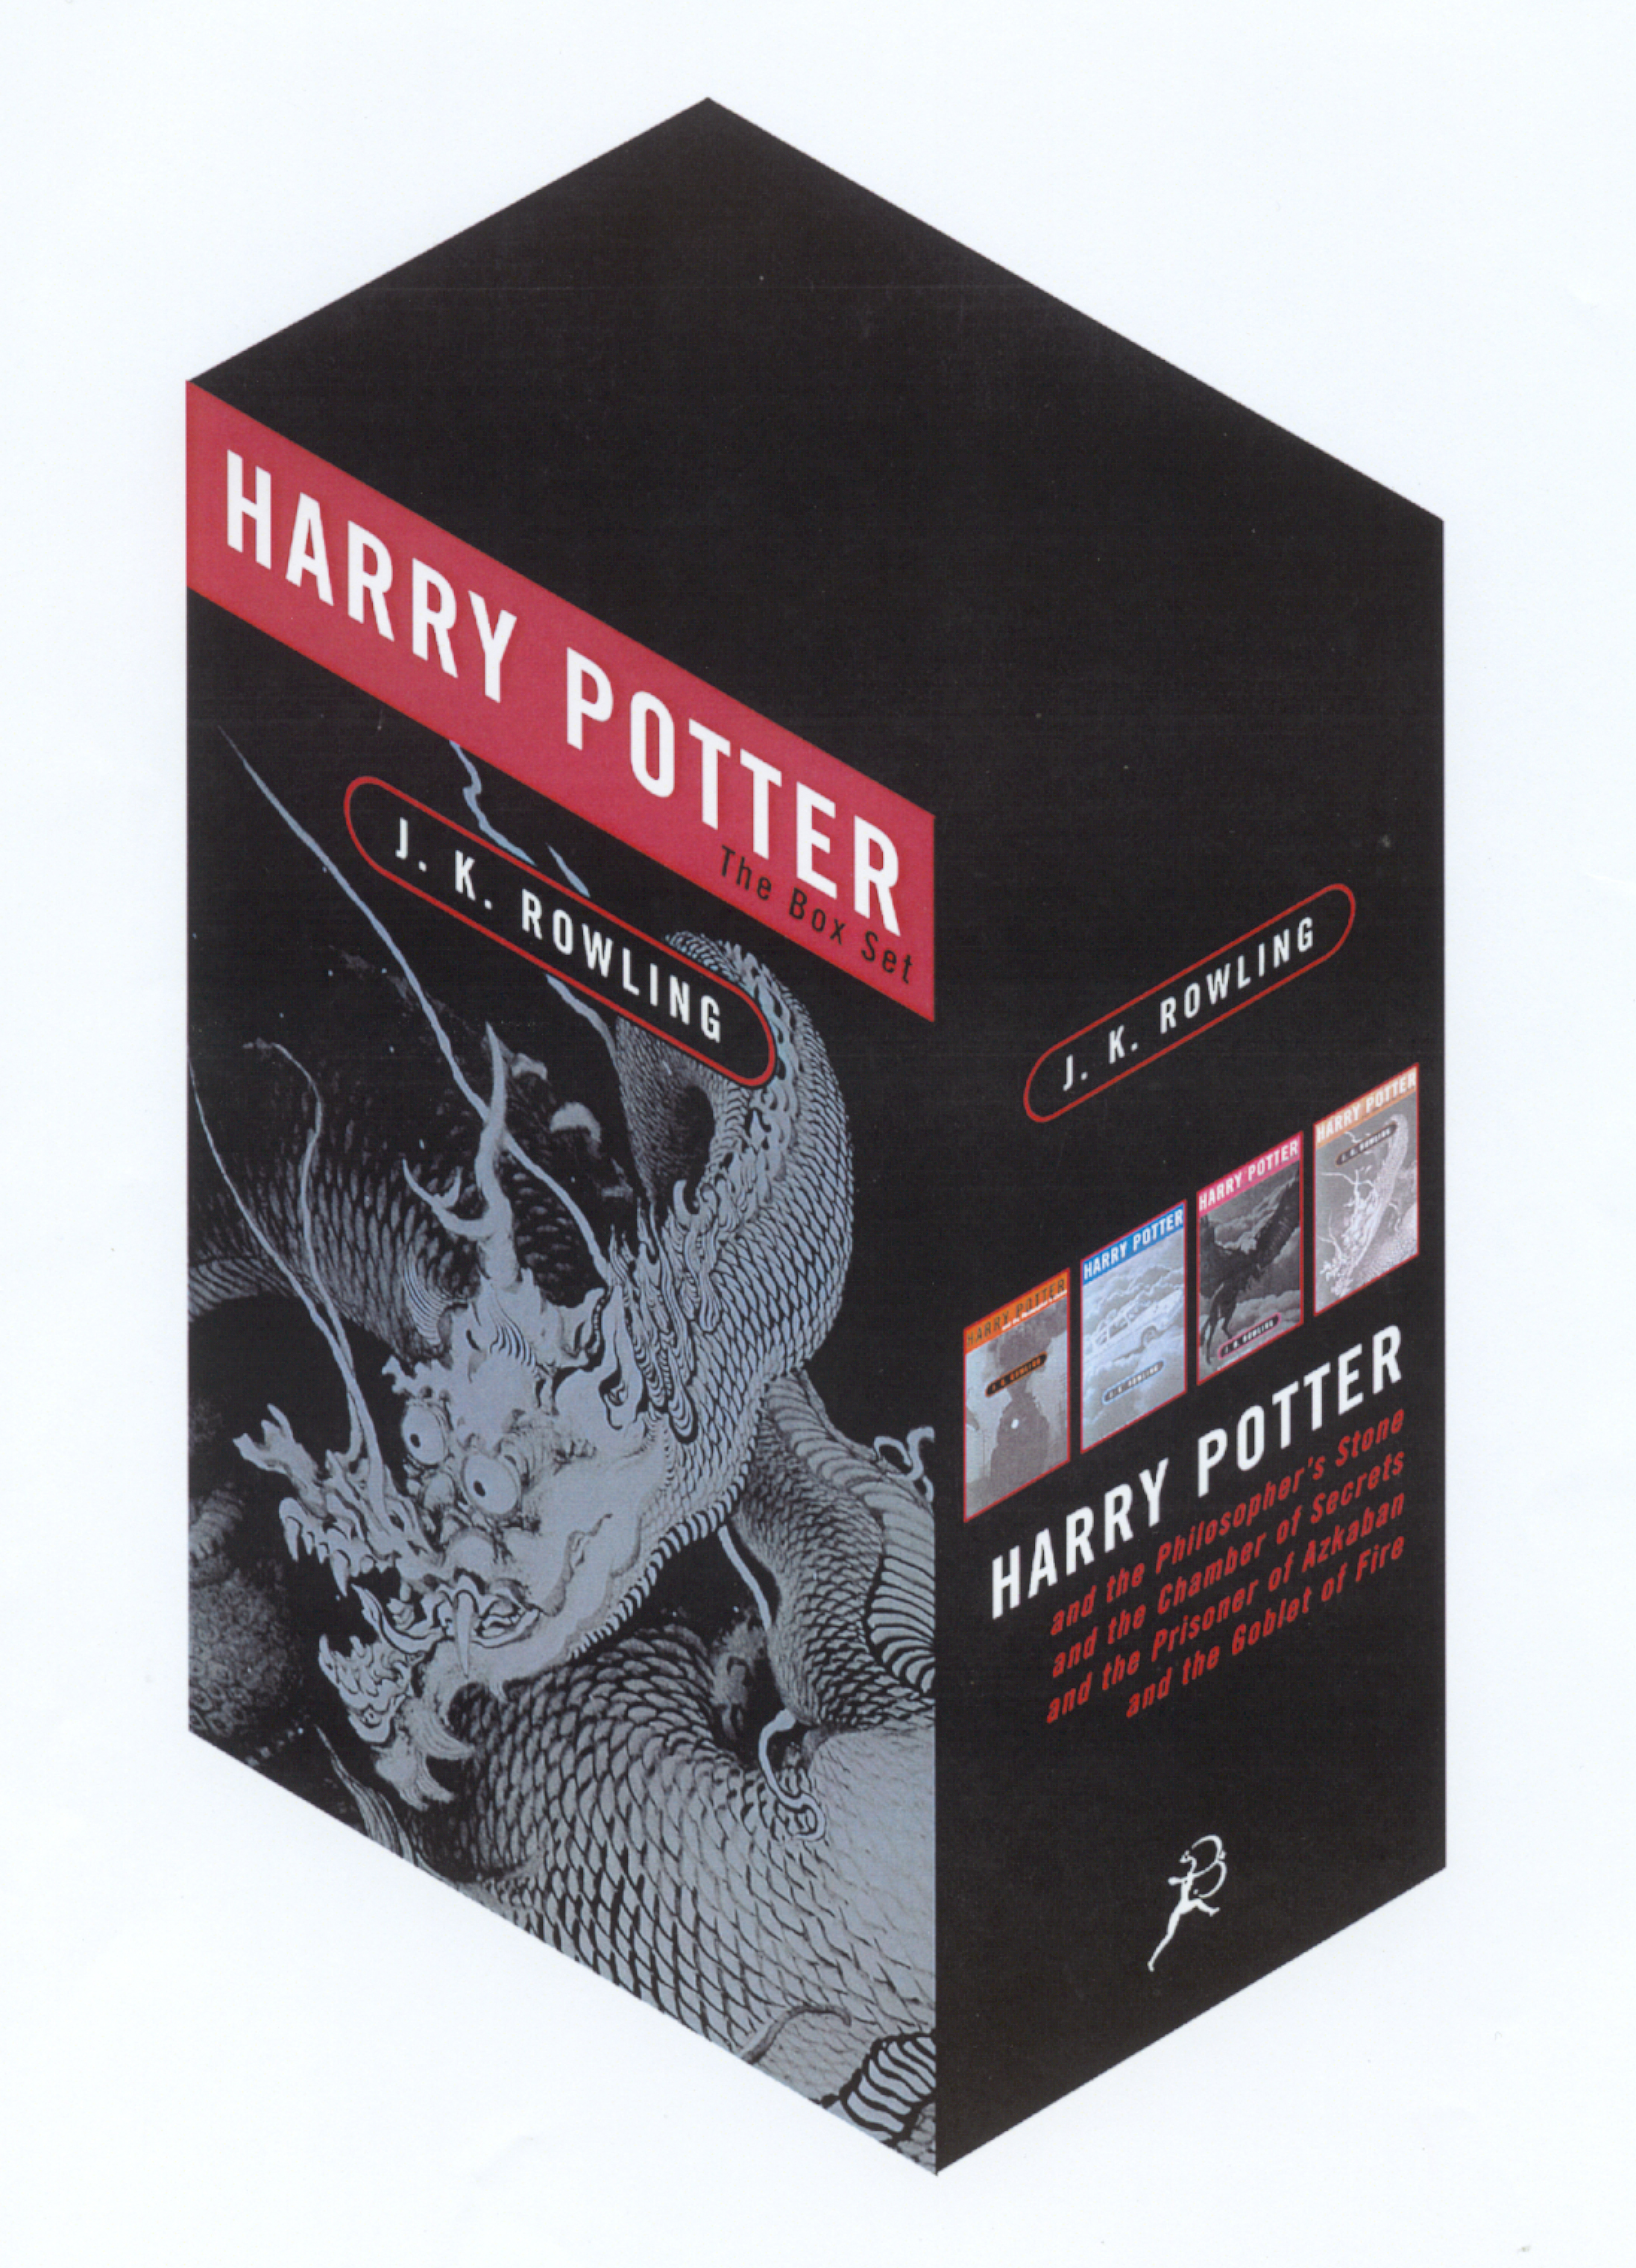 Harry Potter 4 Volume Adult Box Set by JK Rowling, ISBN: 9780747560005